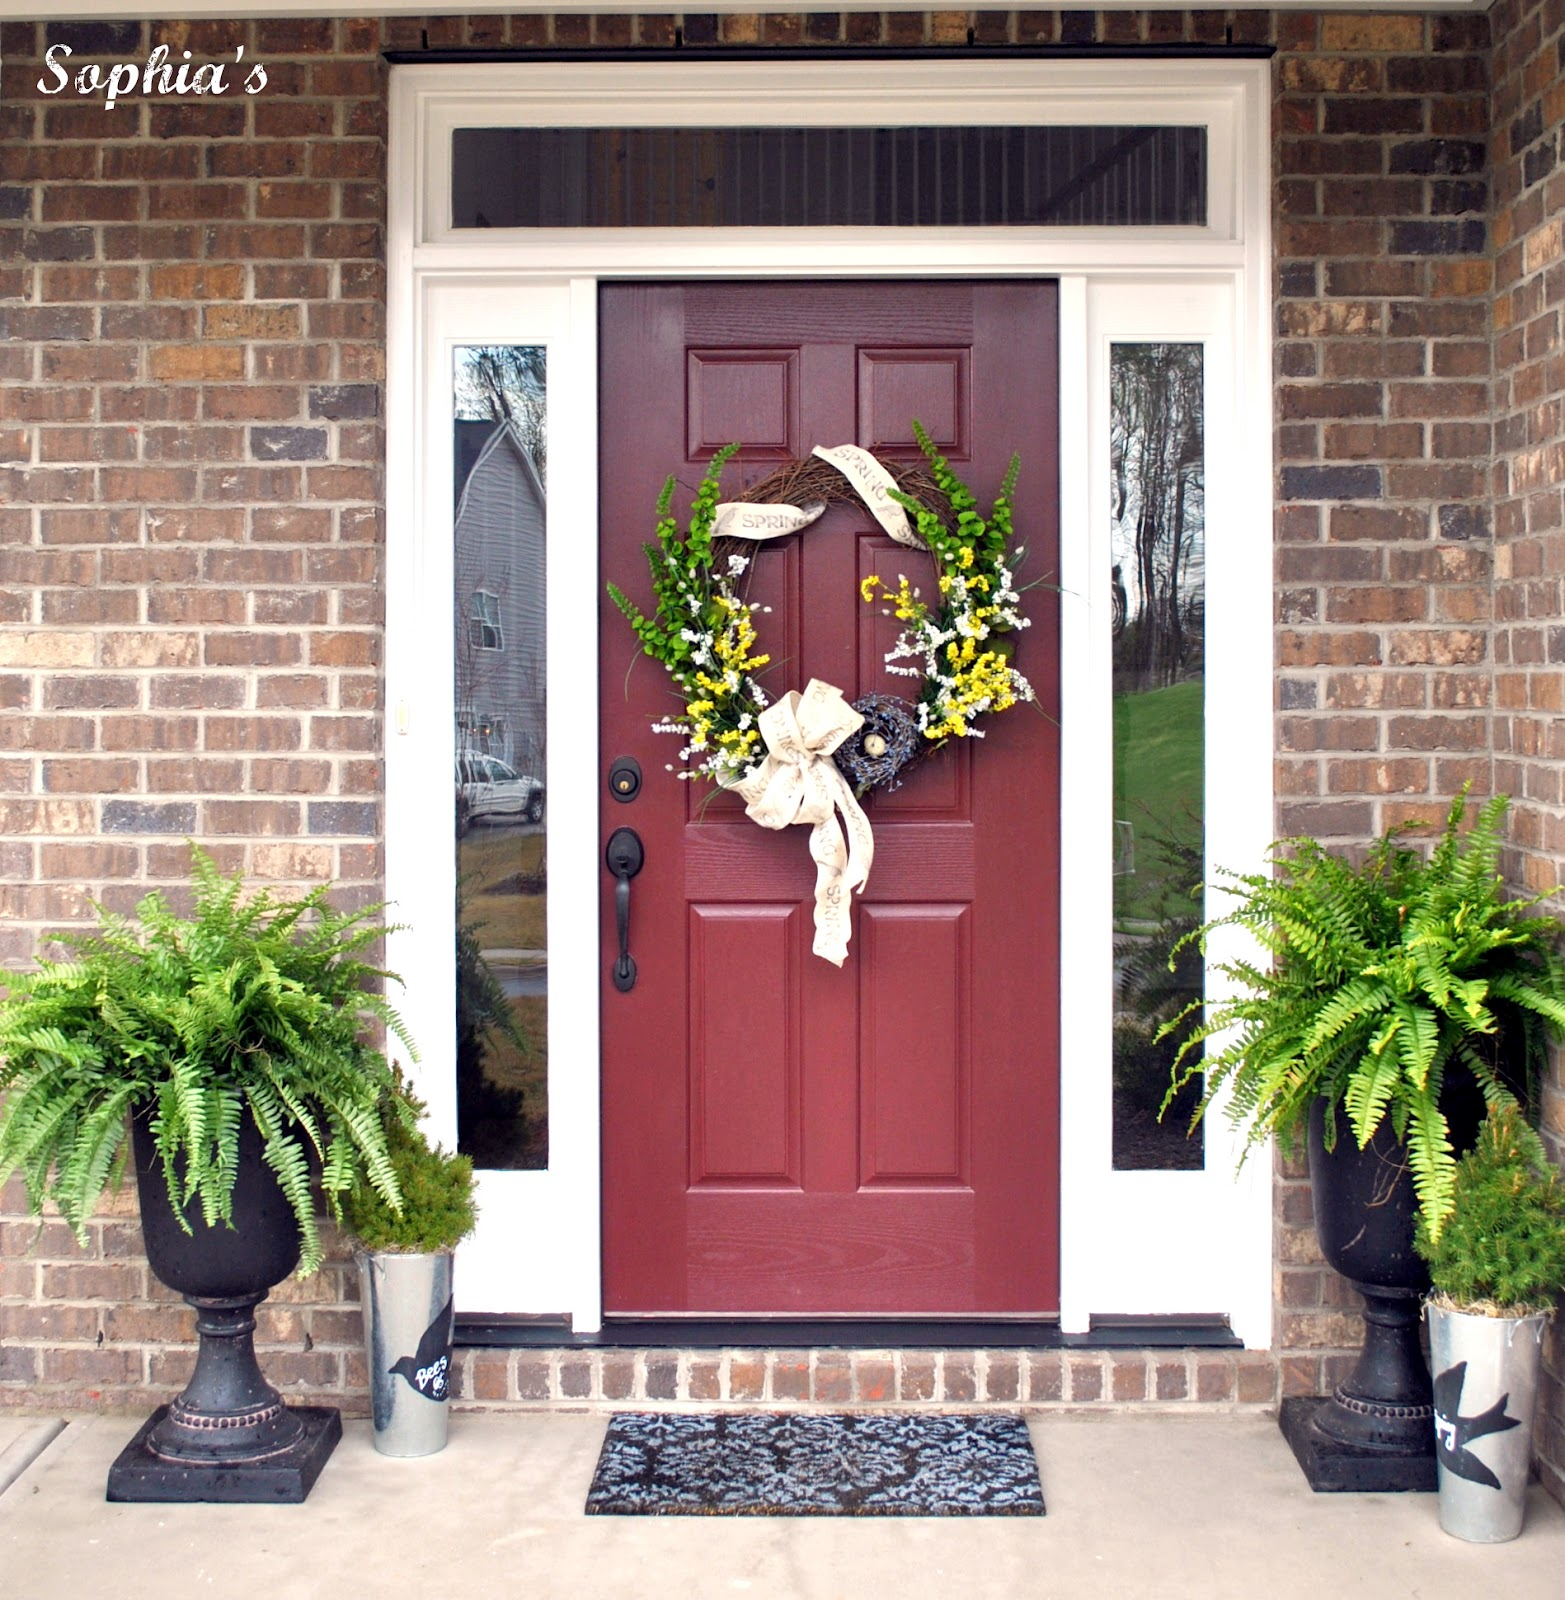 Design and decor spring front porch and wreath project for Front door porch